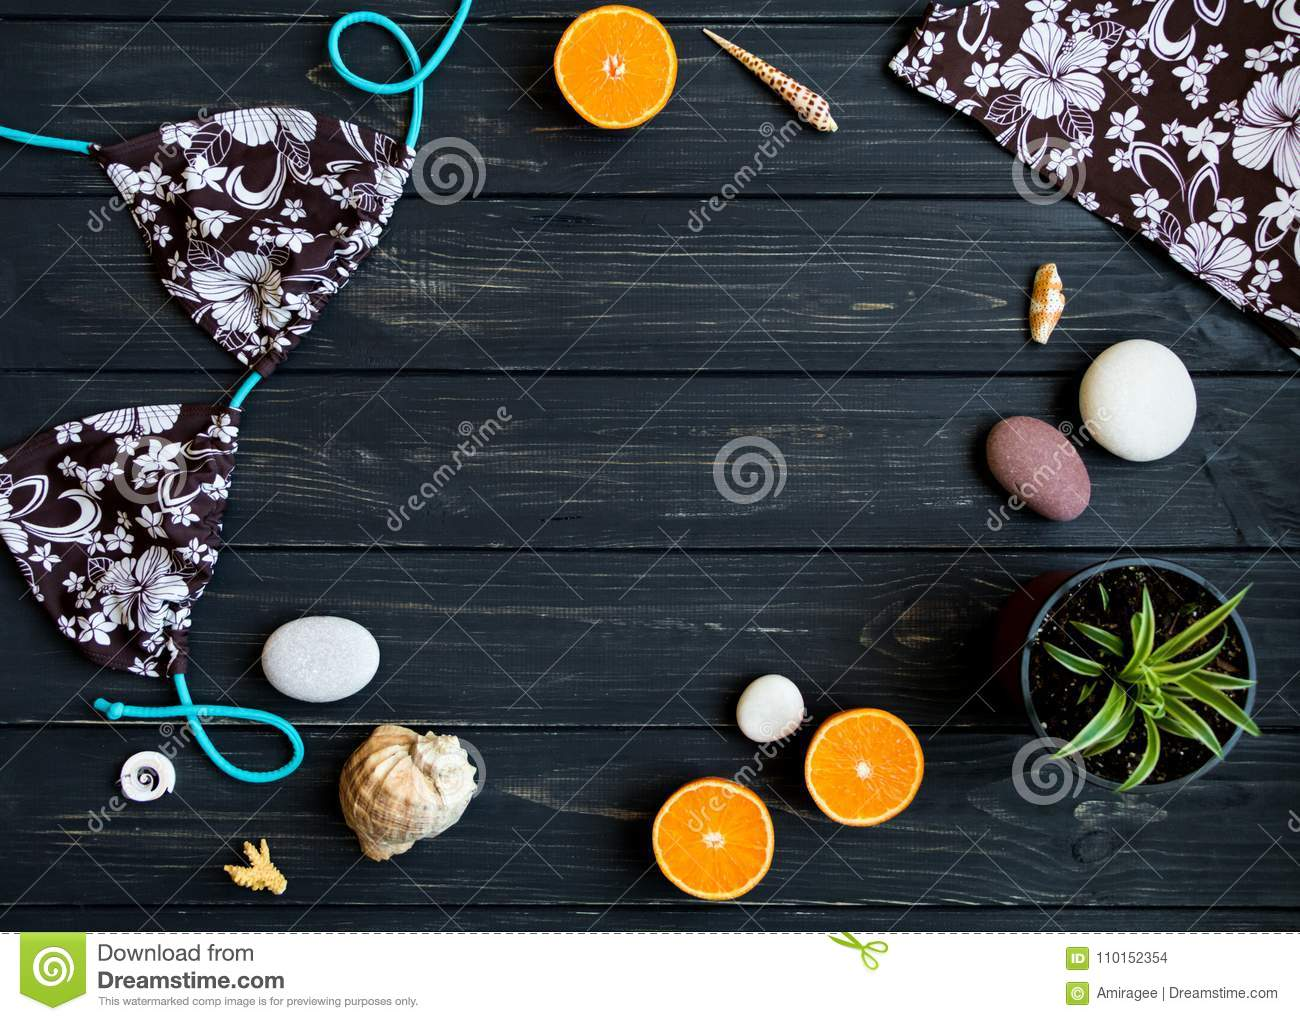 Holiday elements: swimsuit, stones, seashells, fruits. Travel photo, flat lay, top view